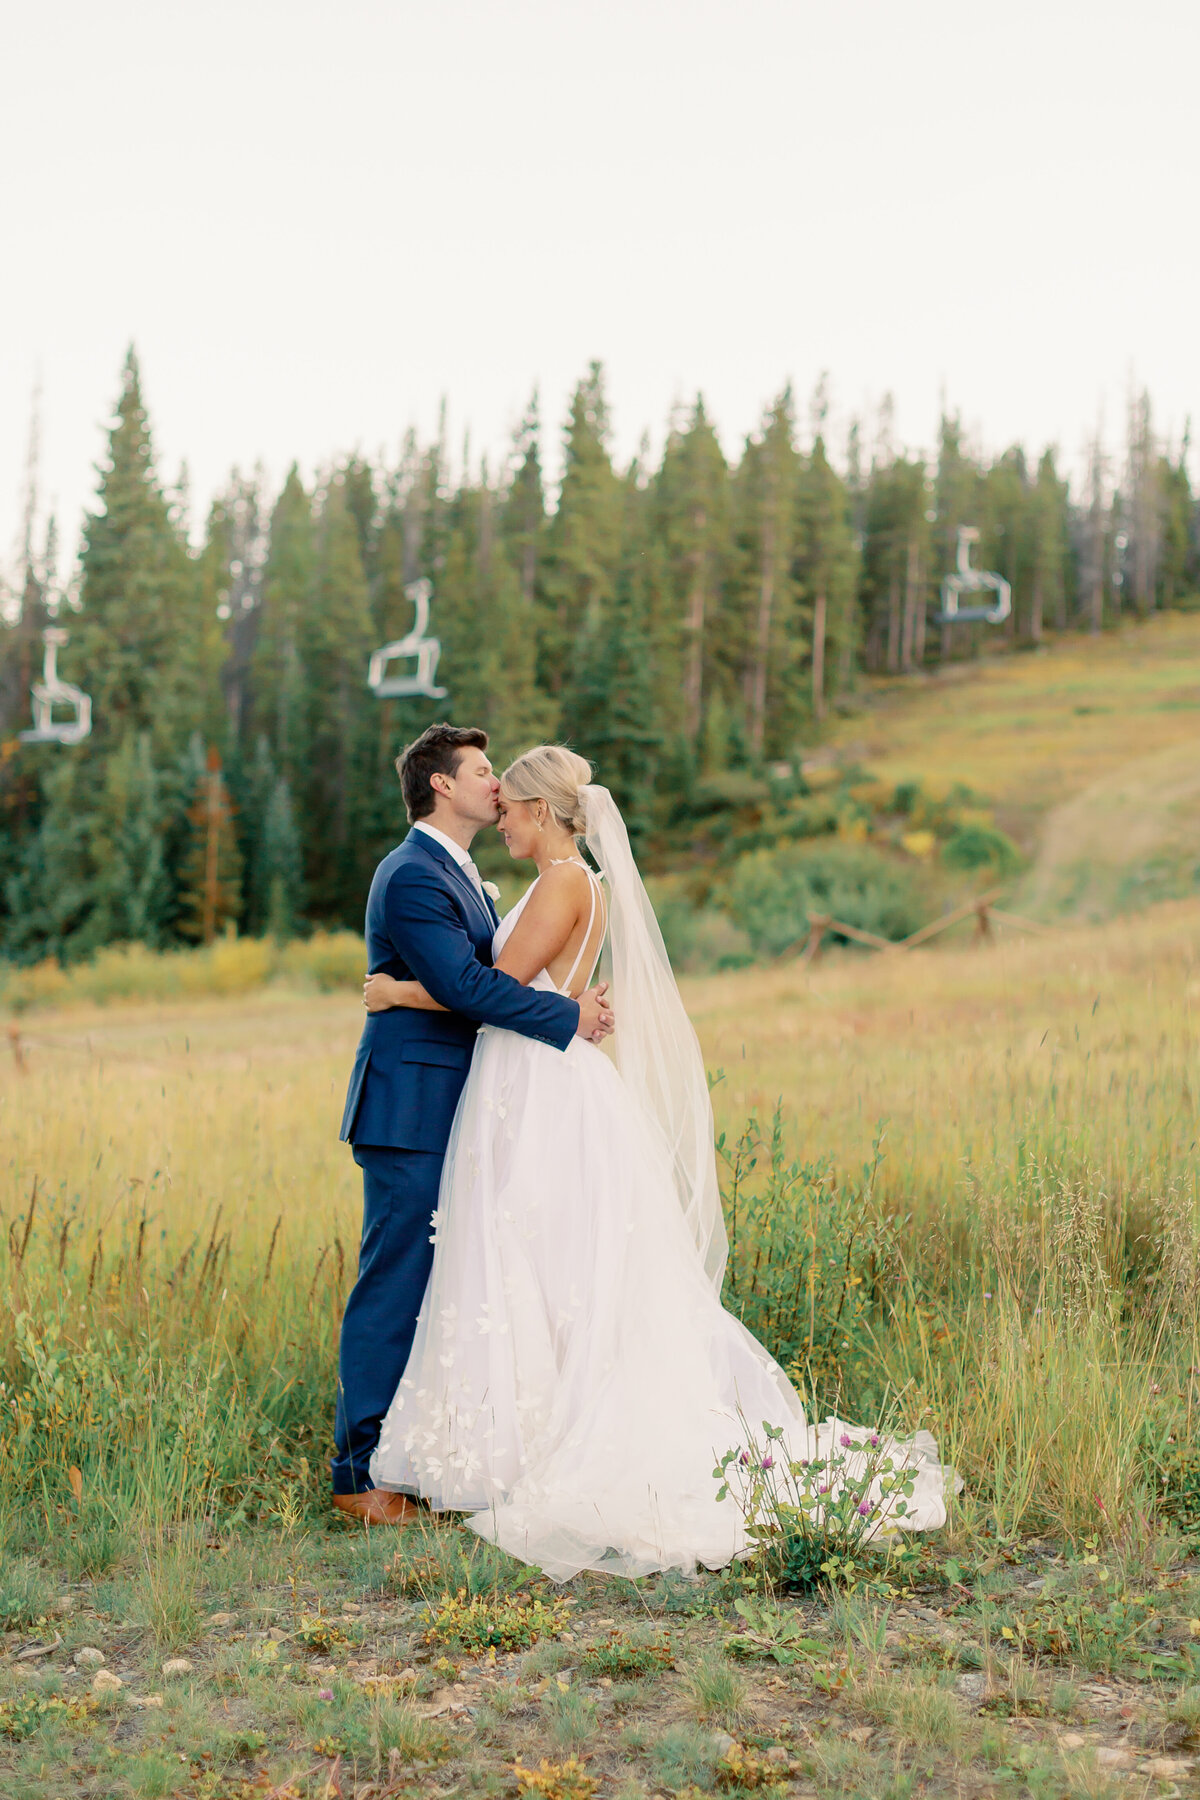 ML Photo and Film Lauren Marissa Colorado Texas Wedding Photography Filmography Videography Video Denver Austin International Destination19